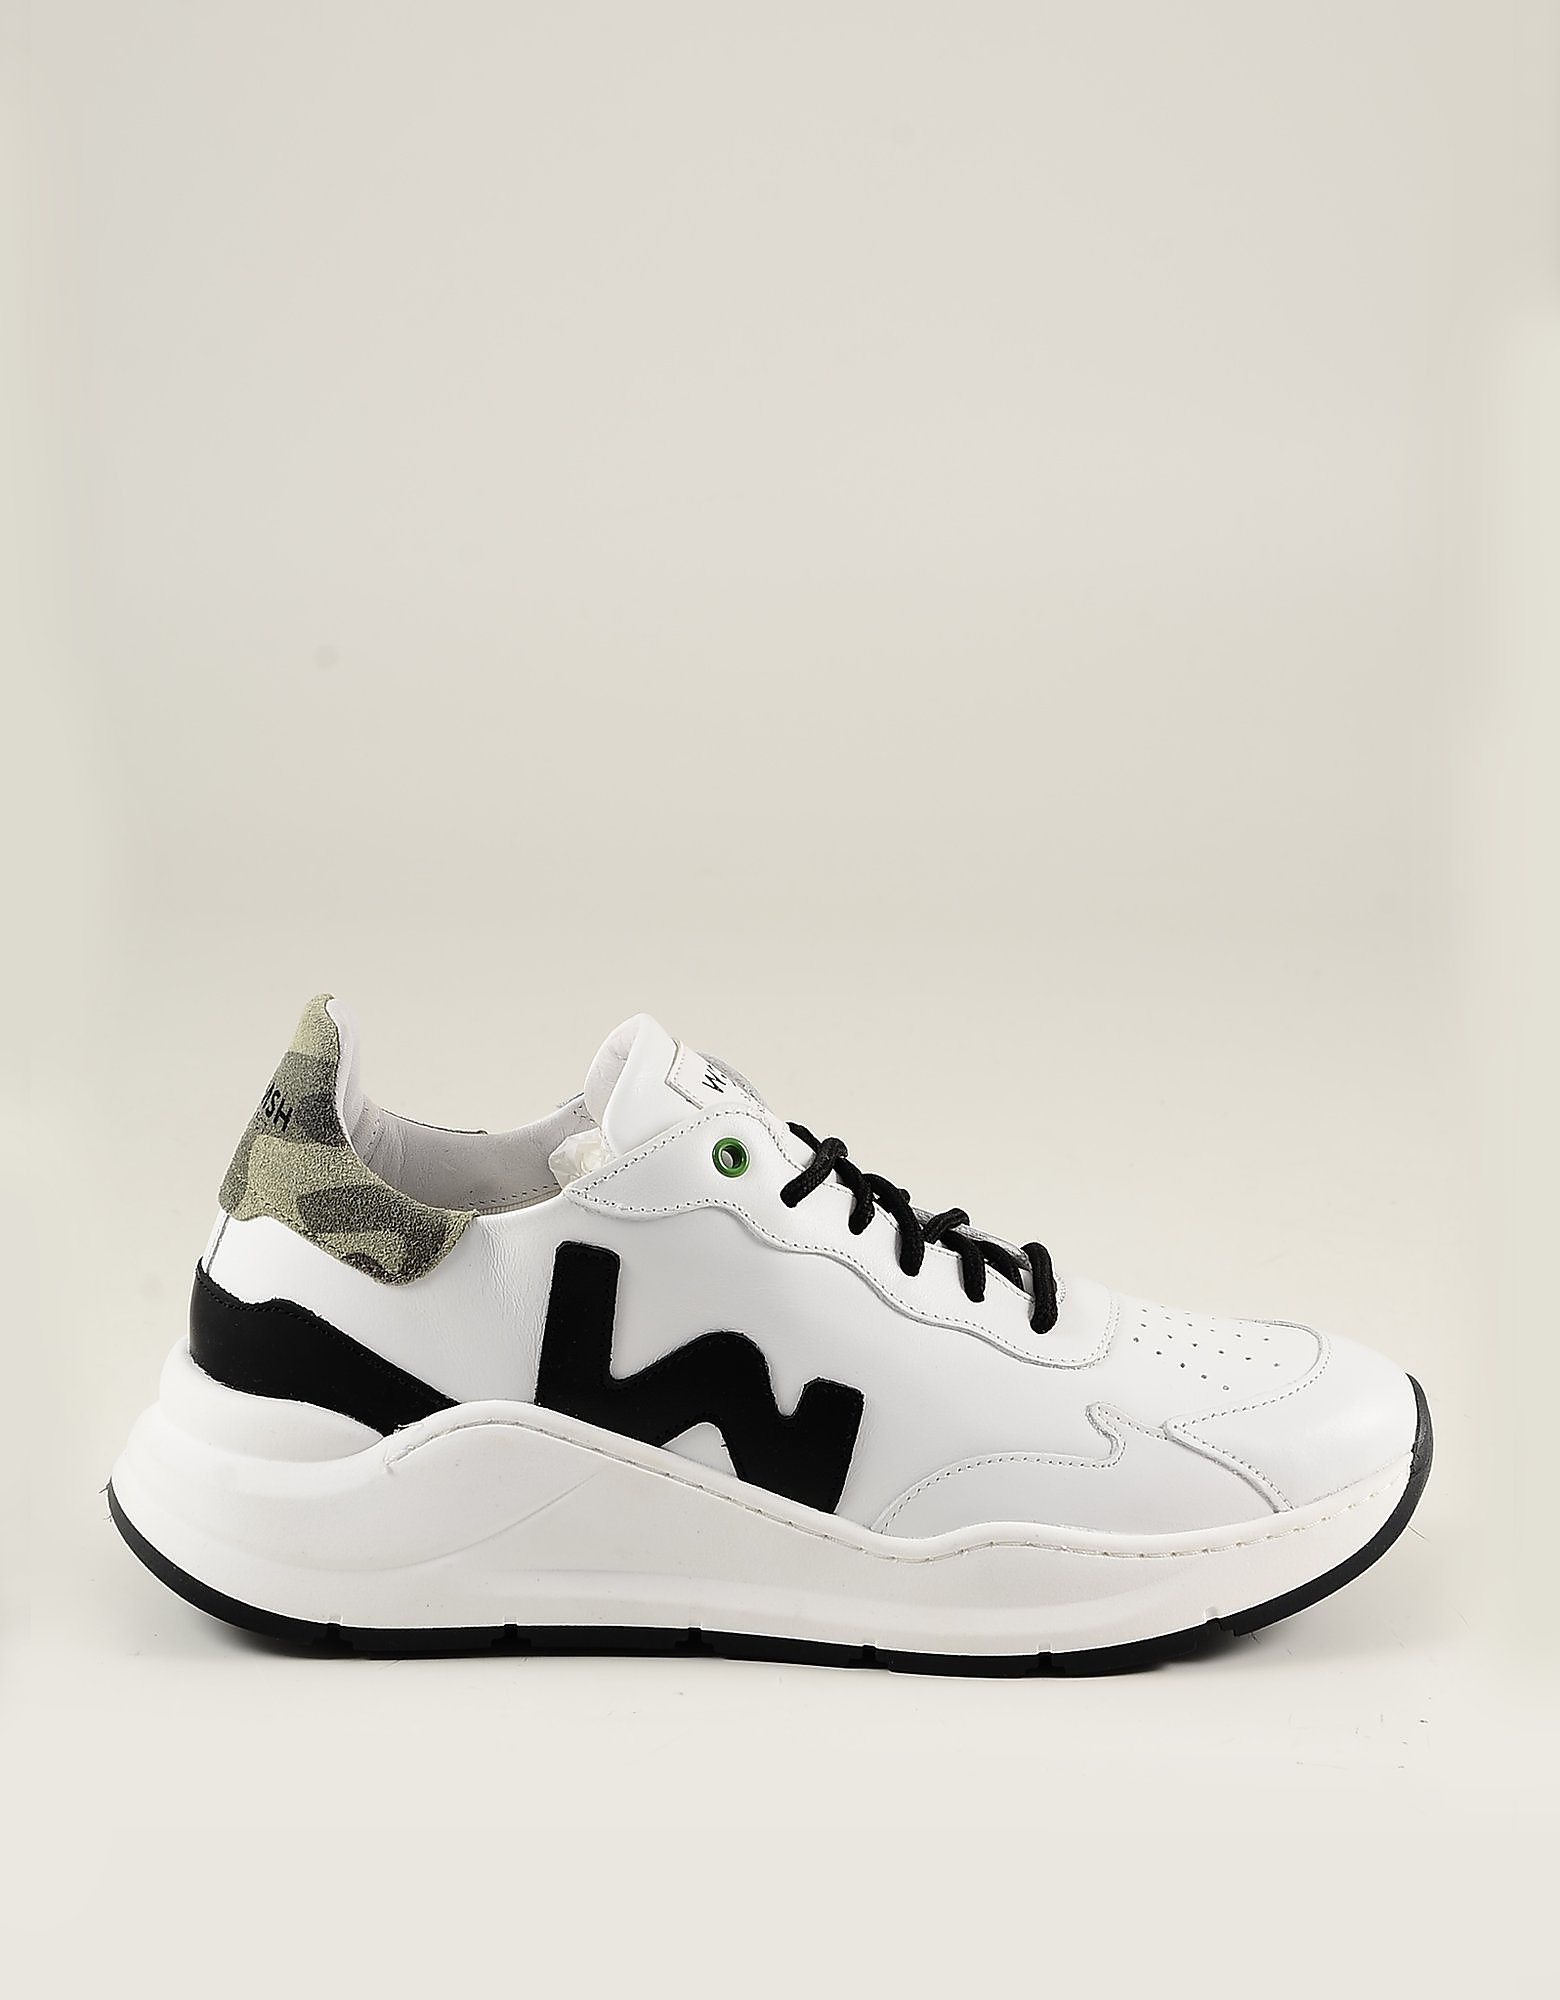 WOMSH Designer Shoes, White Leather Men's Sneakers